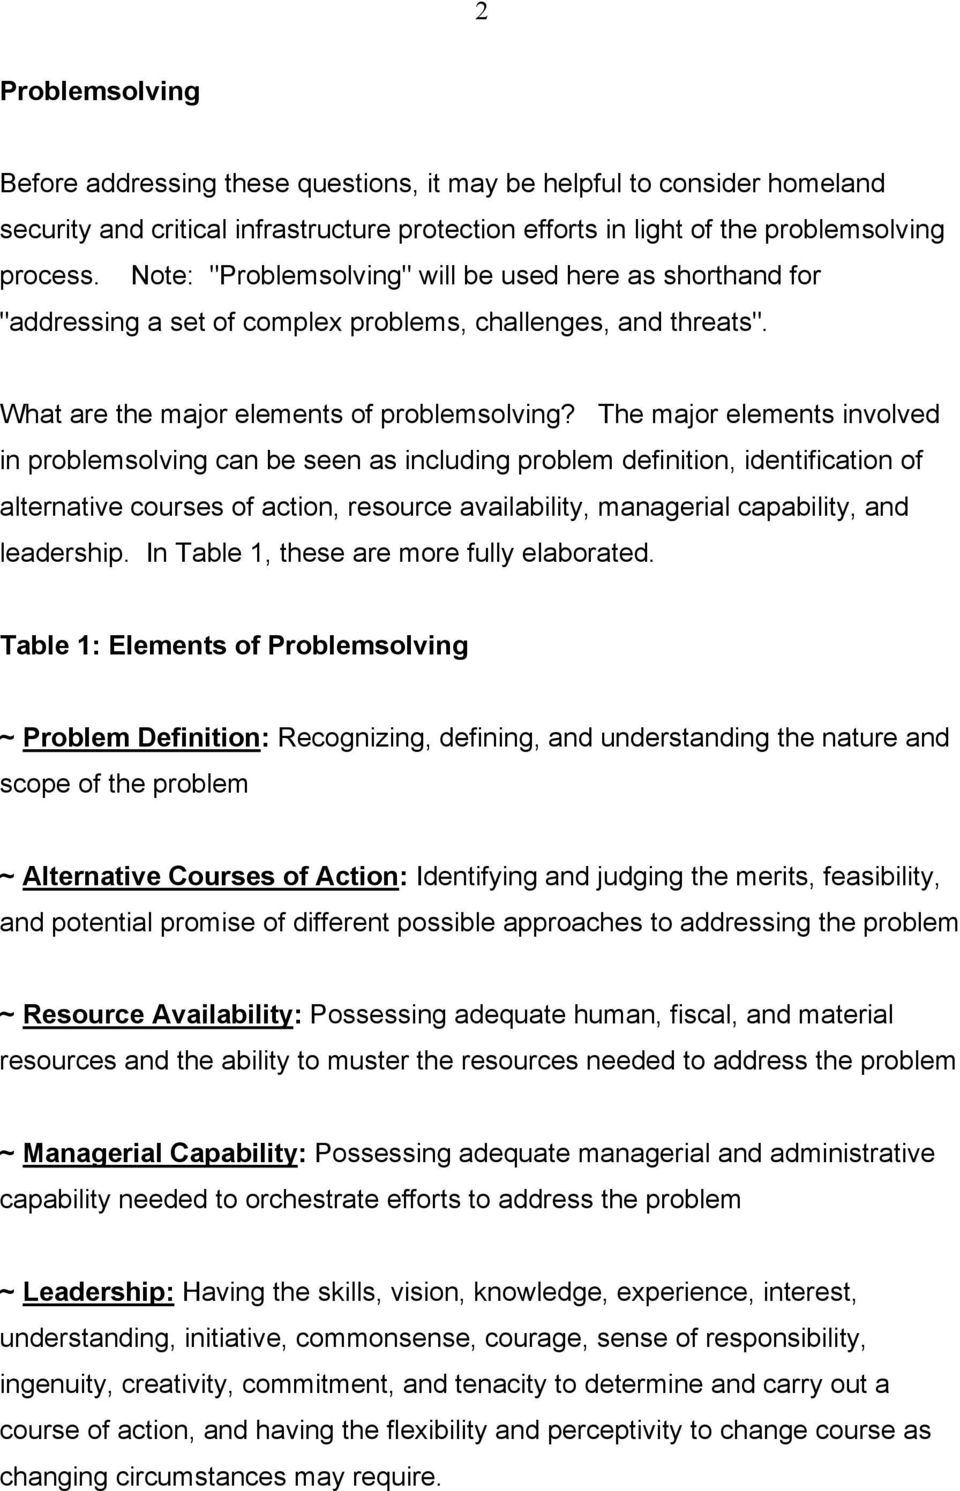 The major elements involved in problemsolving can be seen as including problem definition, identification of alternative courses of action, resource availability, managerial capability, and